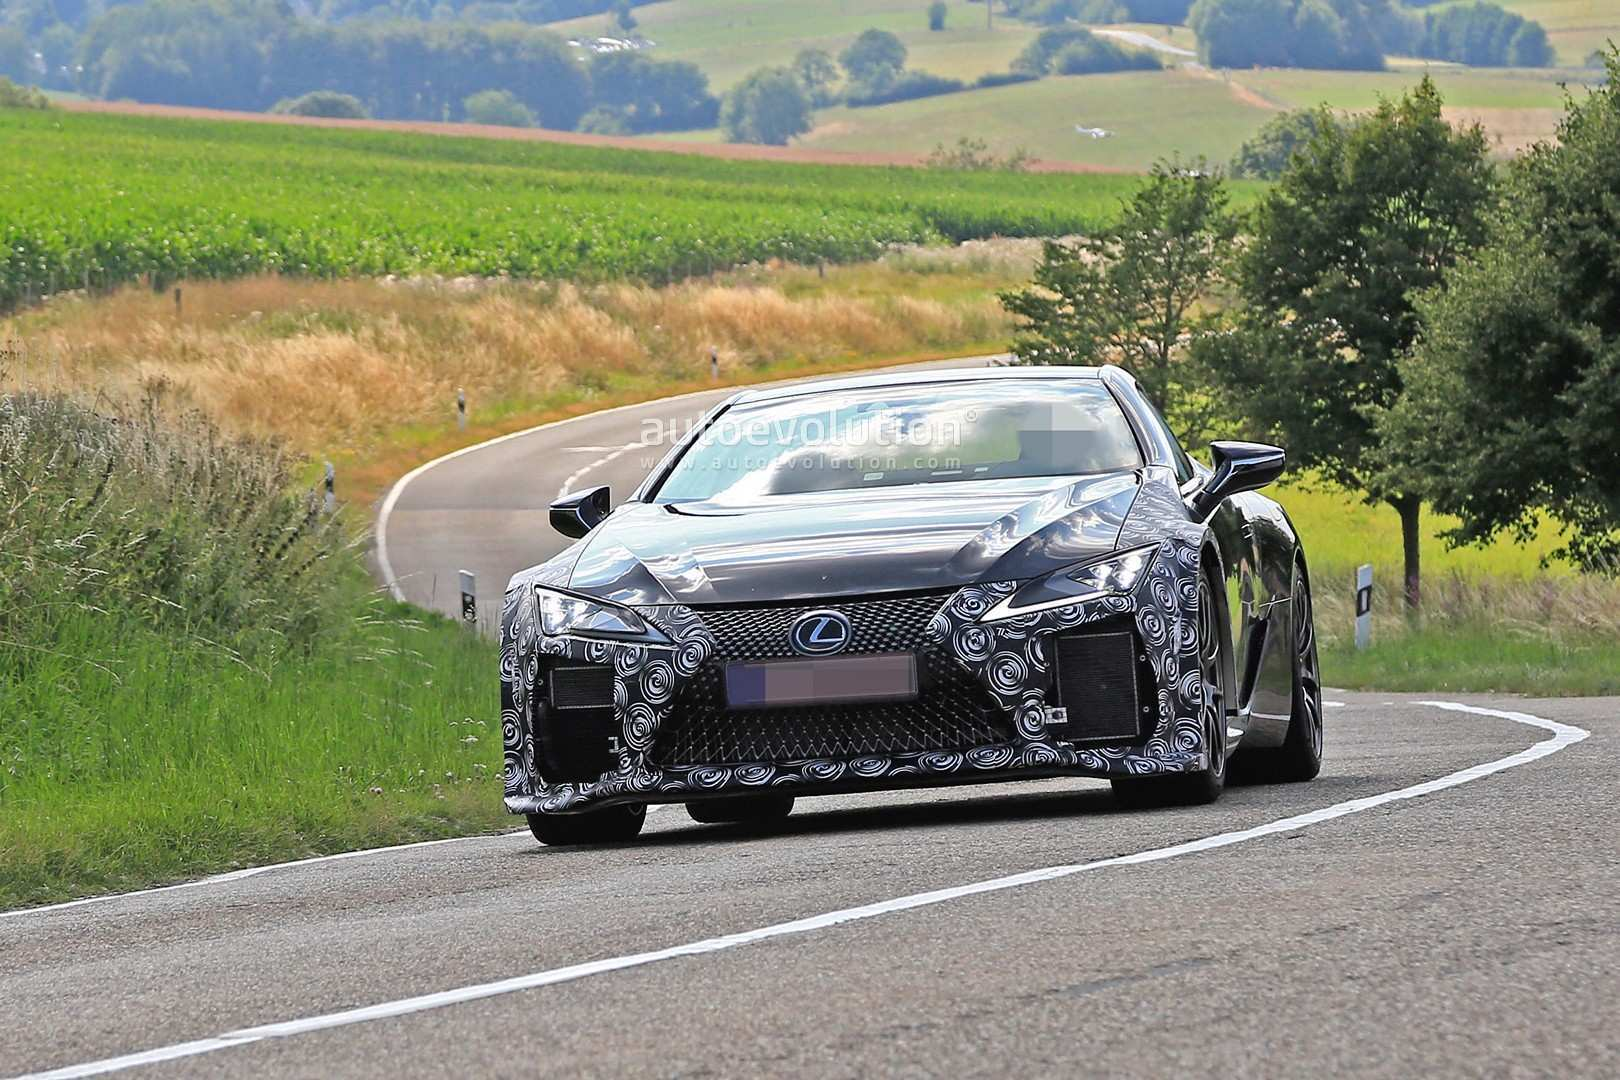 36 All New 2020 Lexus Isf Performance and New Engine with 2020 Lexus Isf